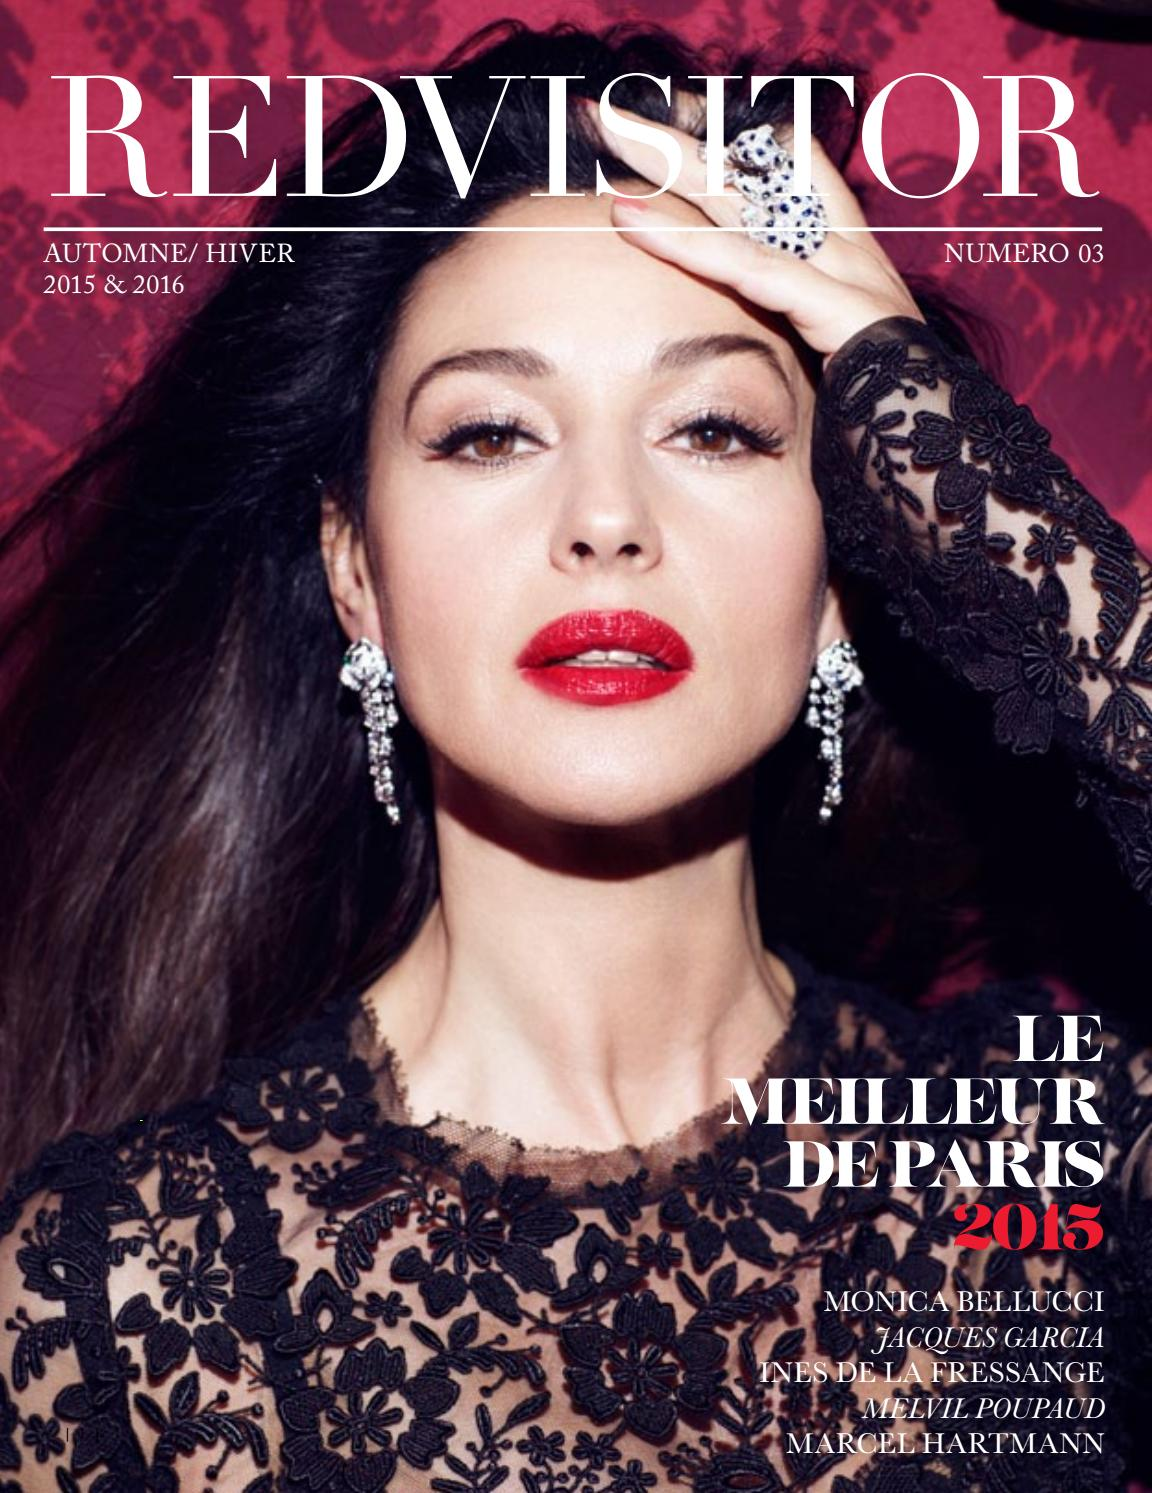 RedVisitor Issue 3 - French Version by Kimberley McLoughlin - issuu 5d1fec44eab4